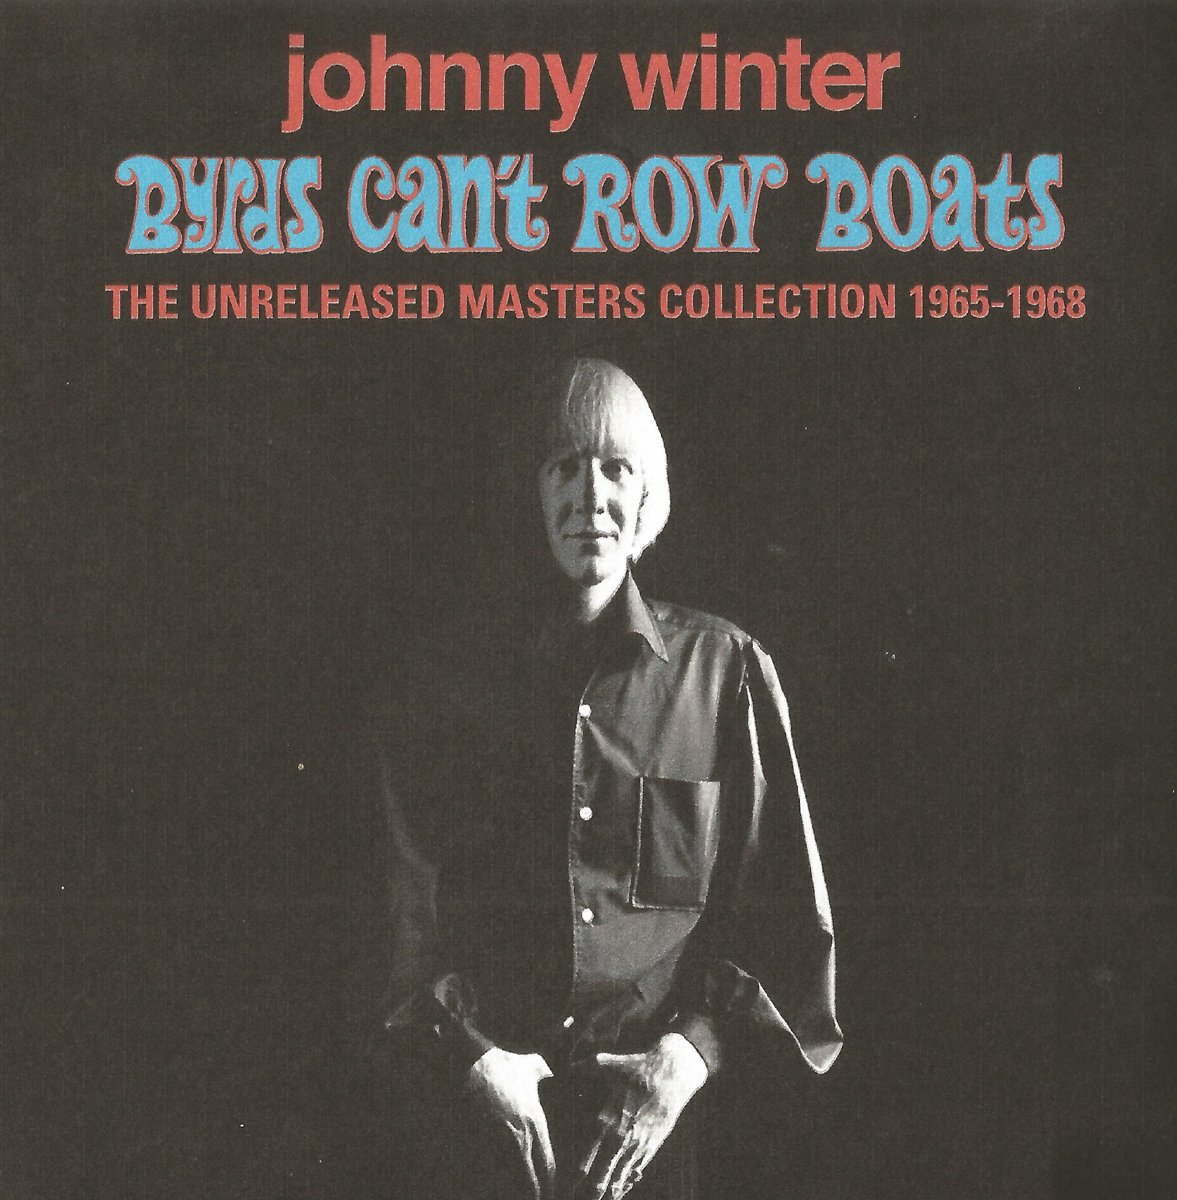 Byrds Can't Row Boats by Winter, Johnny